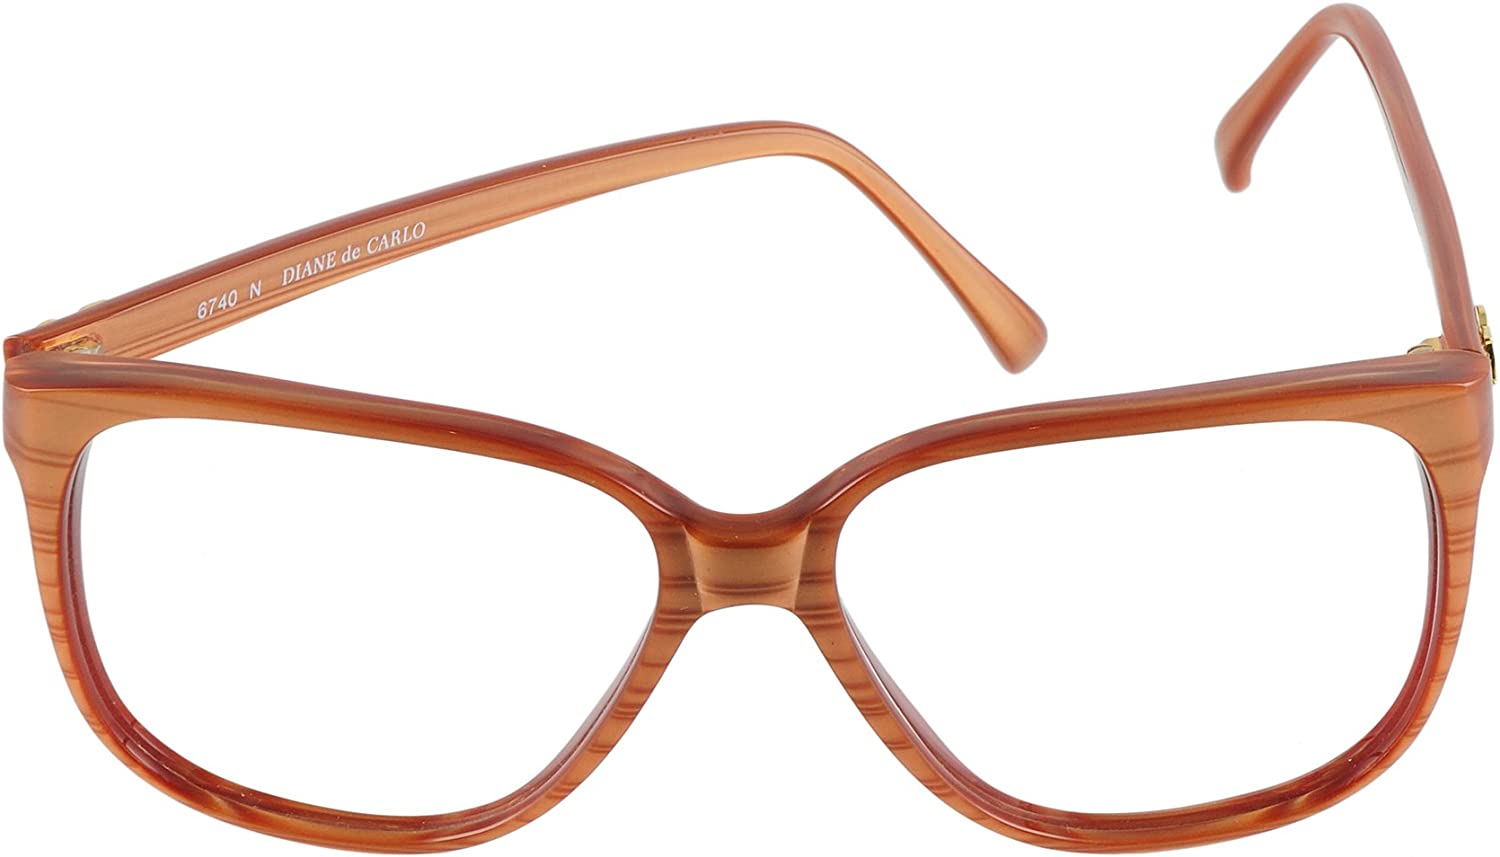 Diane de Carlo Eyeglasses 6740 N Brown 5715 Hand made